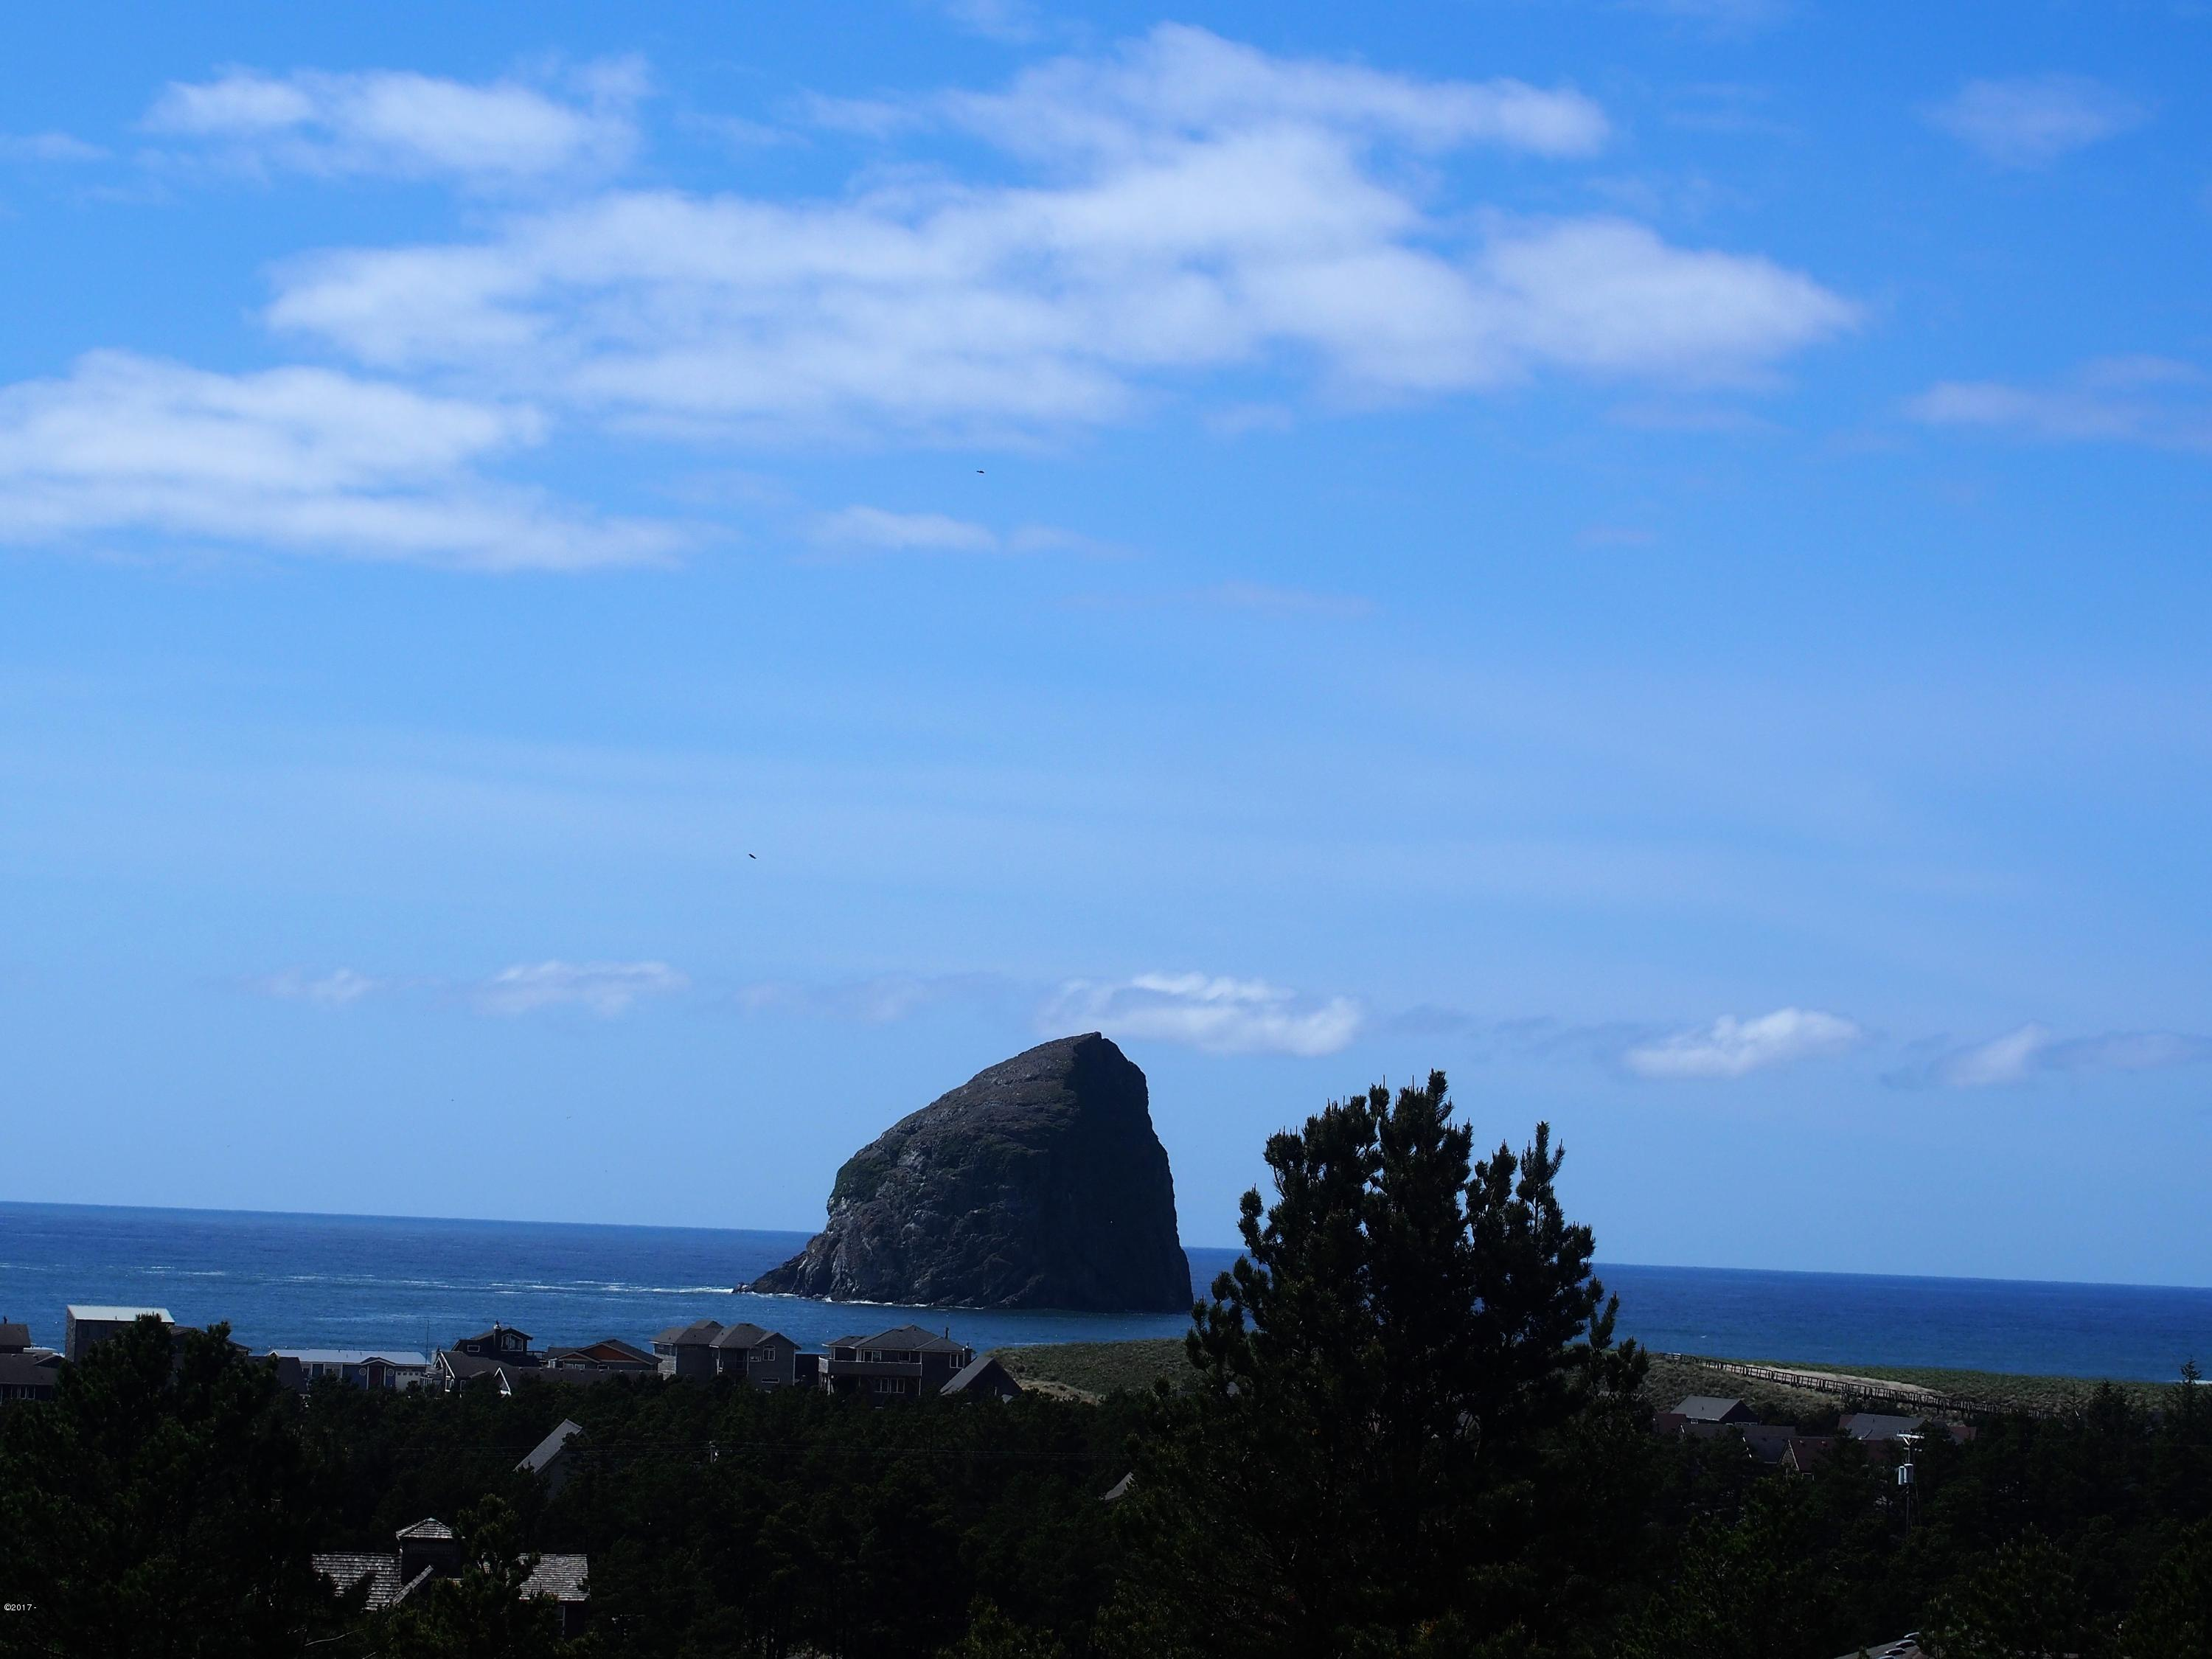 TL 8700 Nestucca Ridge Rd, Pacific City, OR 97135 - view